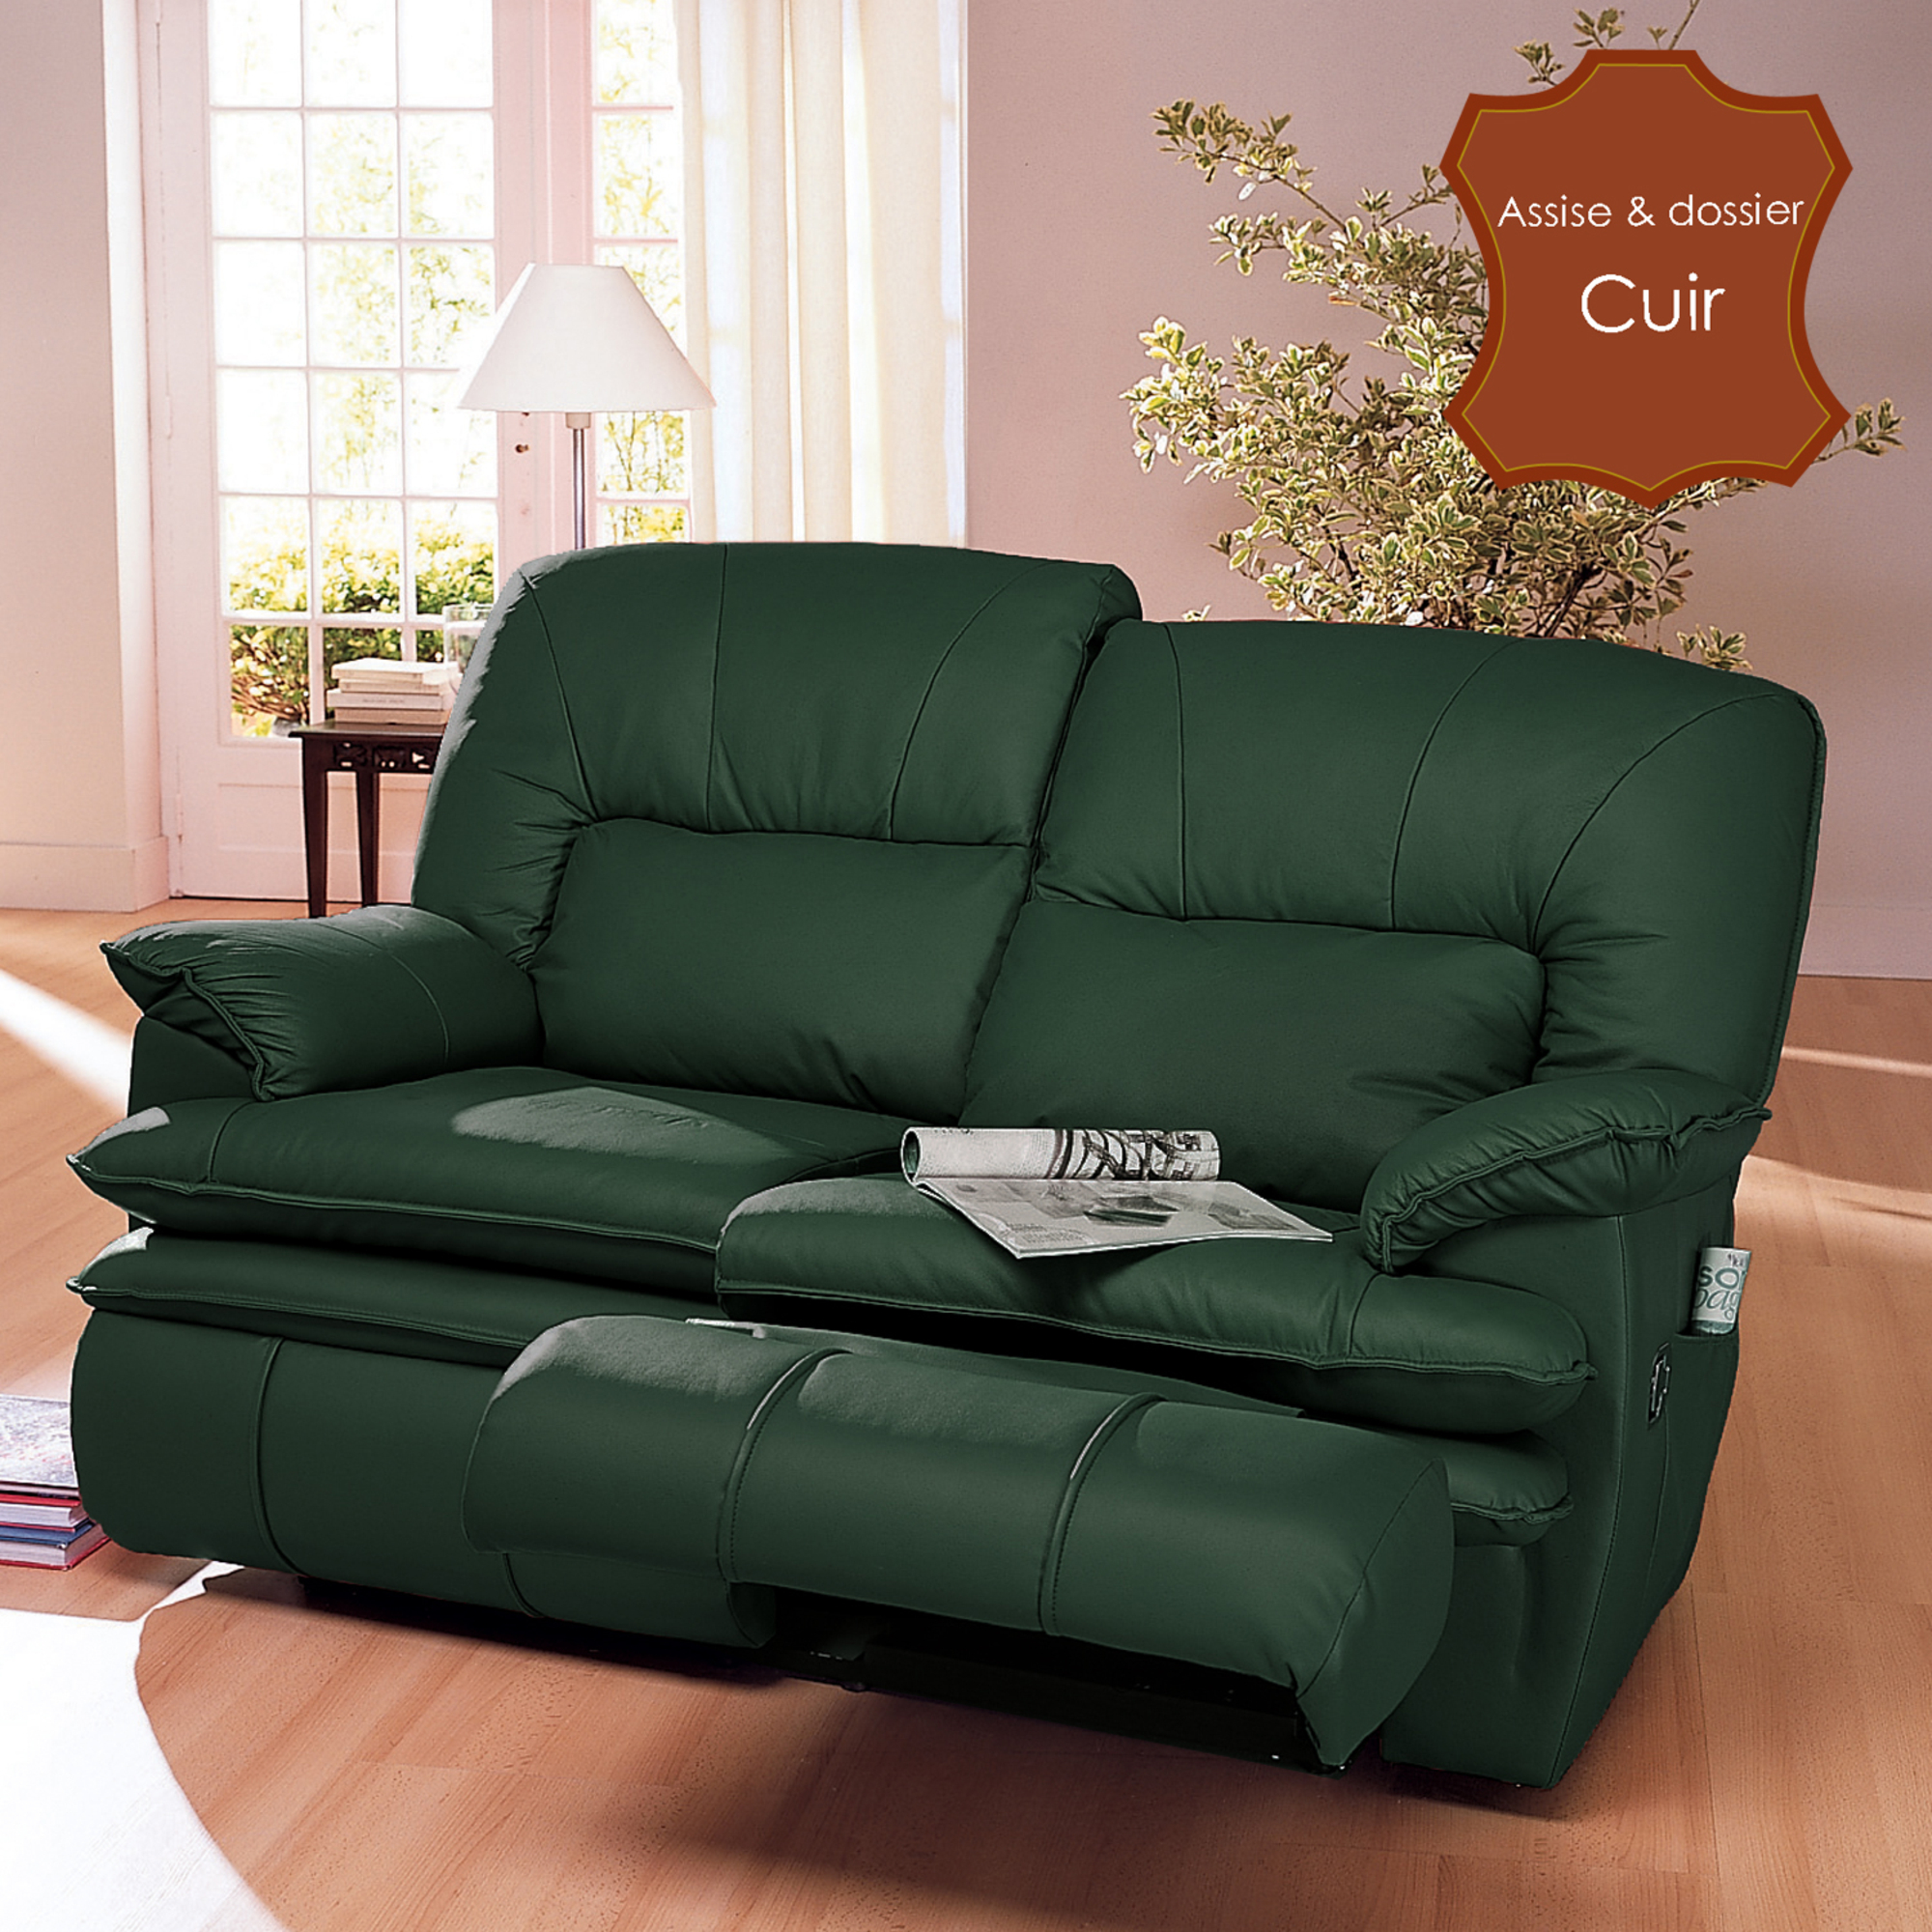 Canap 2 places de relaxation version lectrique privil ge vert anniversa - Canape relax 2 places ...